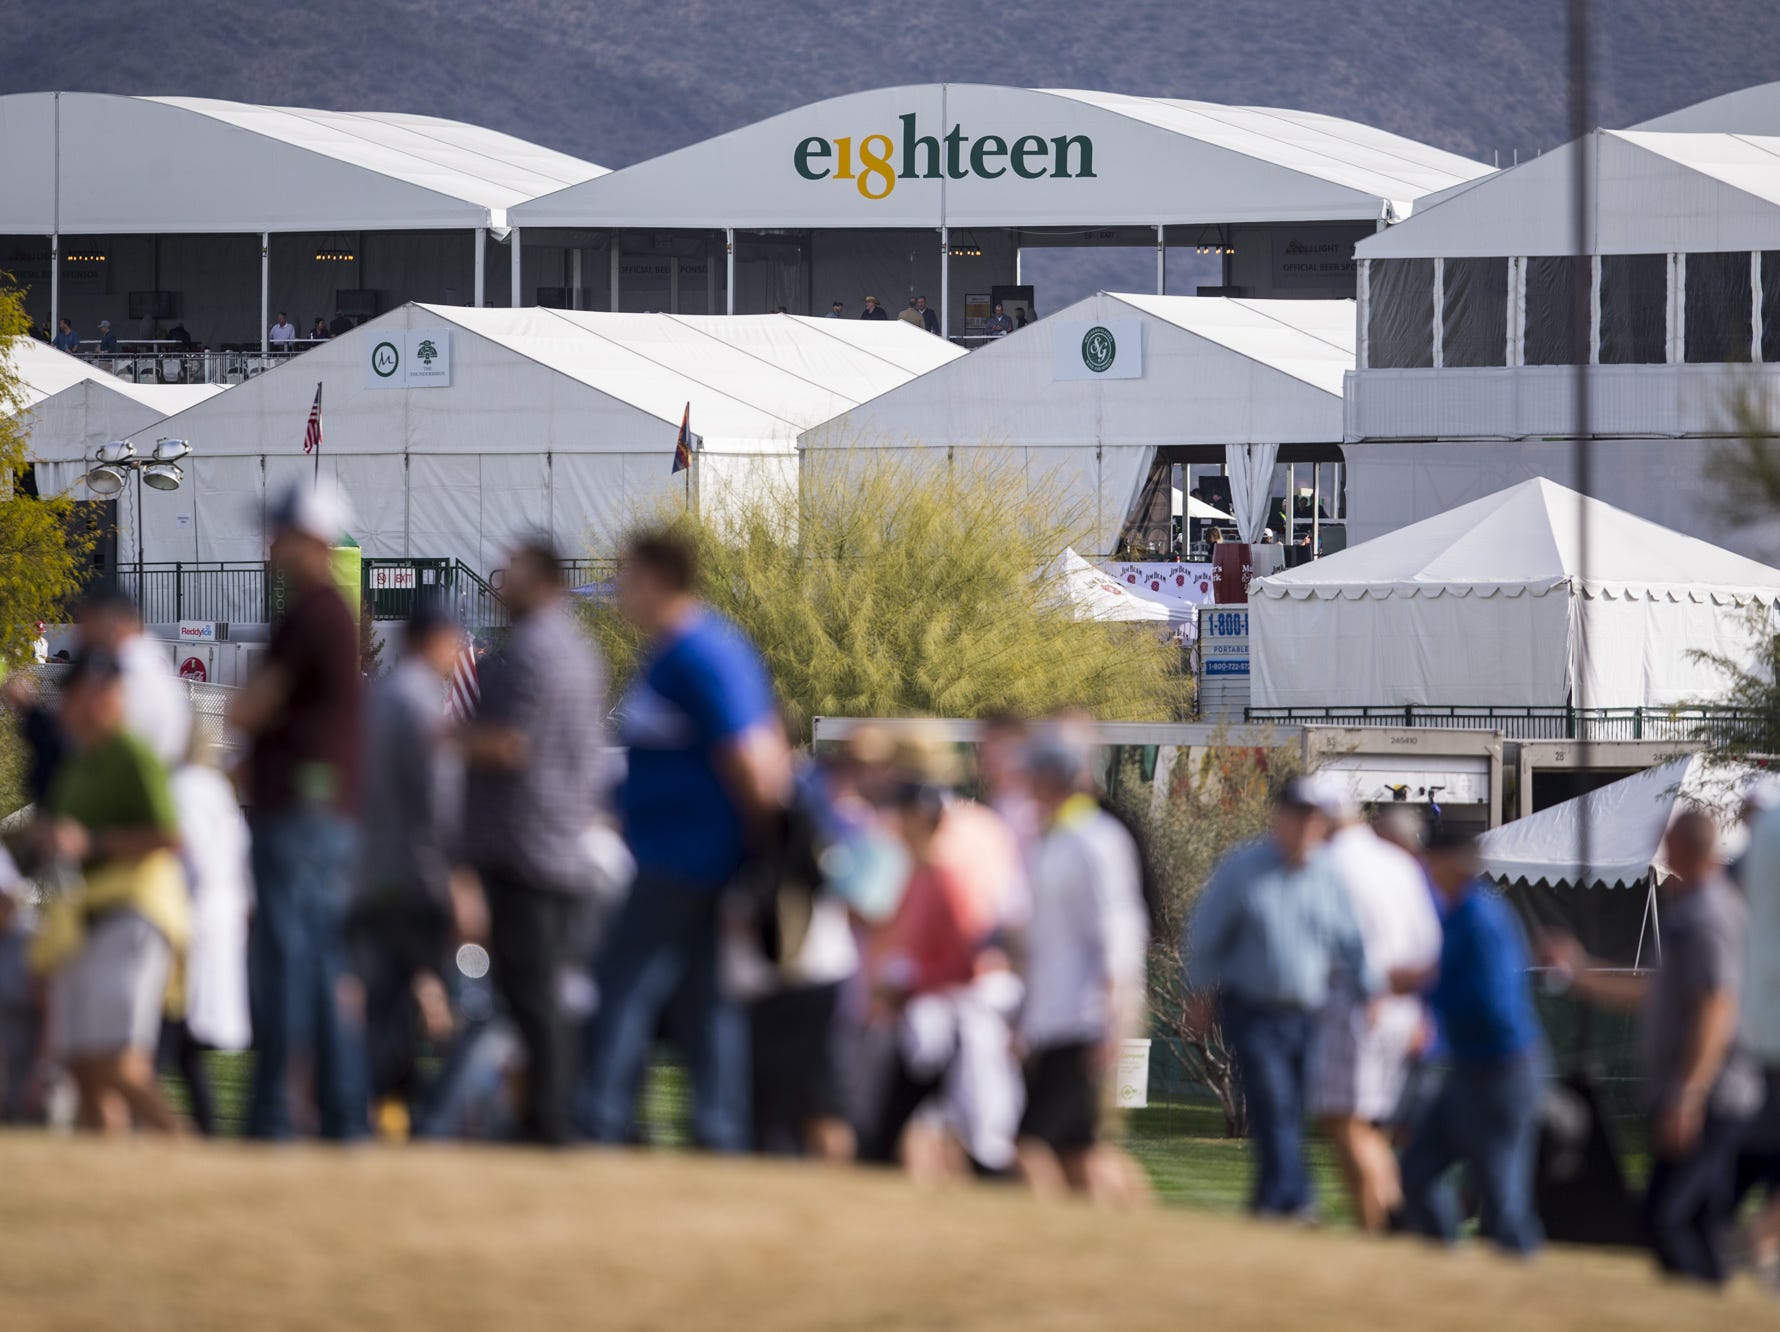 The 18th hole is pictured during the first round of the Waste Management Phoenix Open.